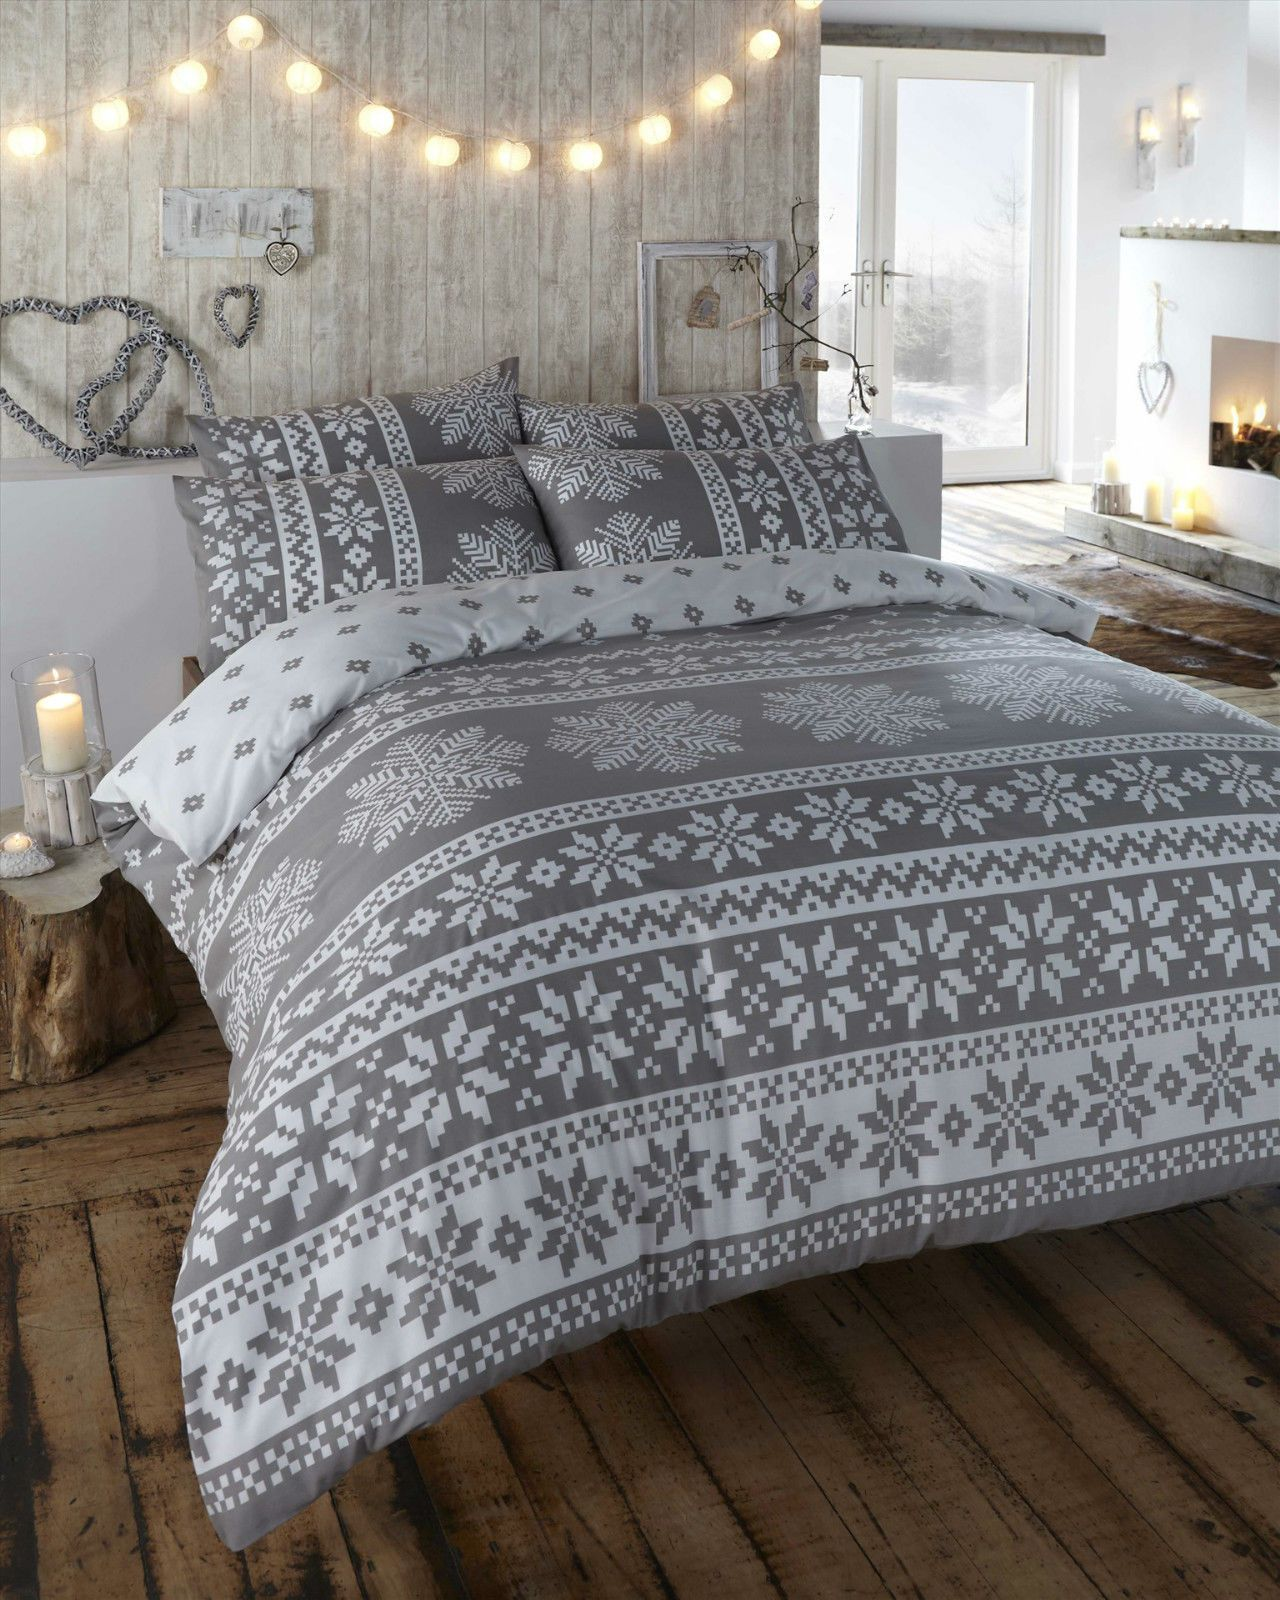 Retro Nordic Alpine Snowflake Duvet Quilt Cover Bedding Set Winter Bedroom Decor Winter Bedroom Christmas Decorations Bedroom